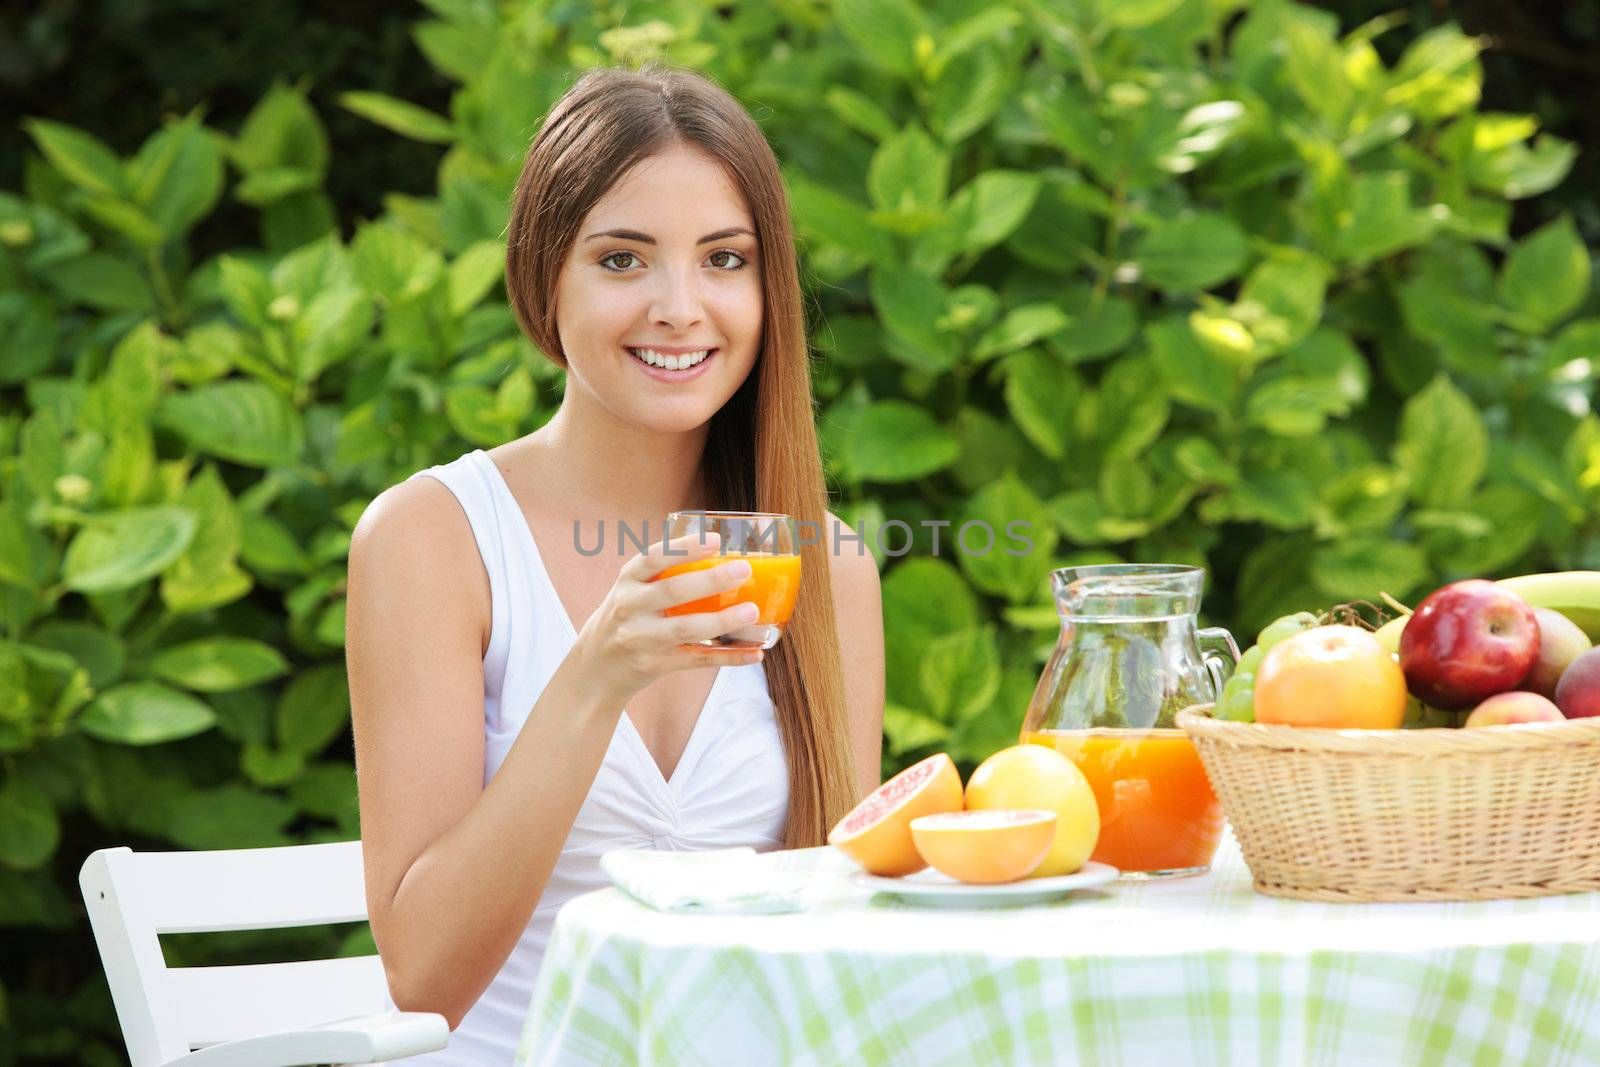 Young woman relaxes in the garden drinking a orange juice